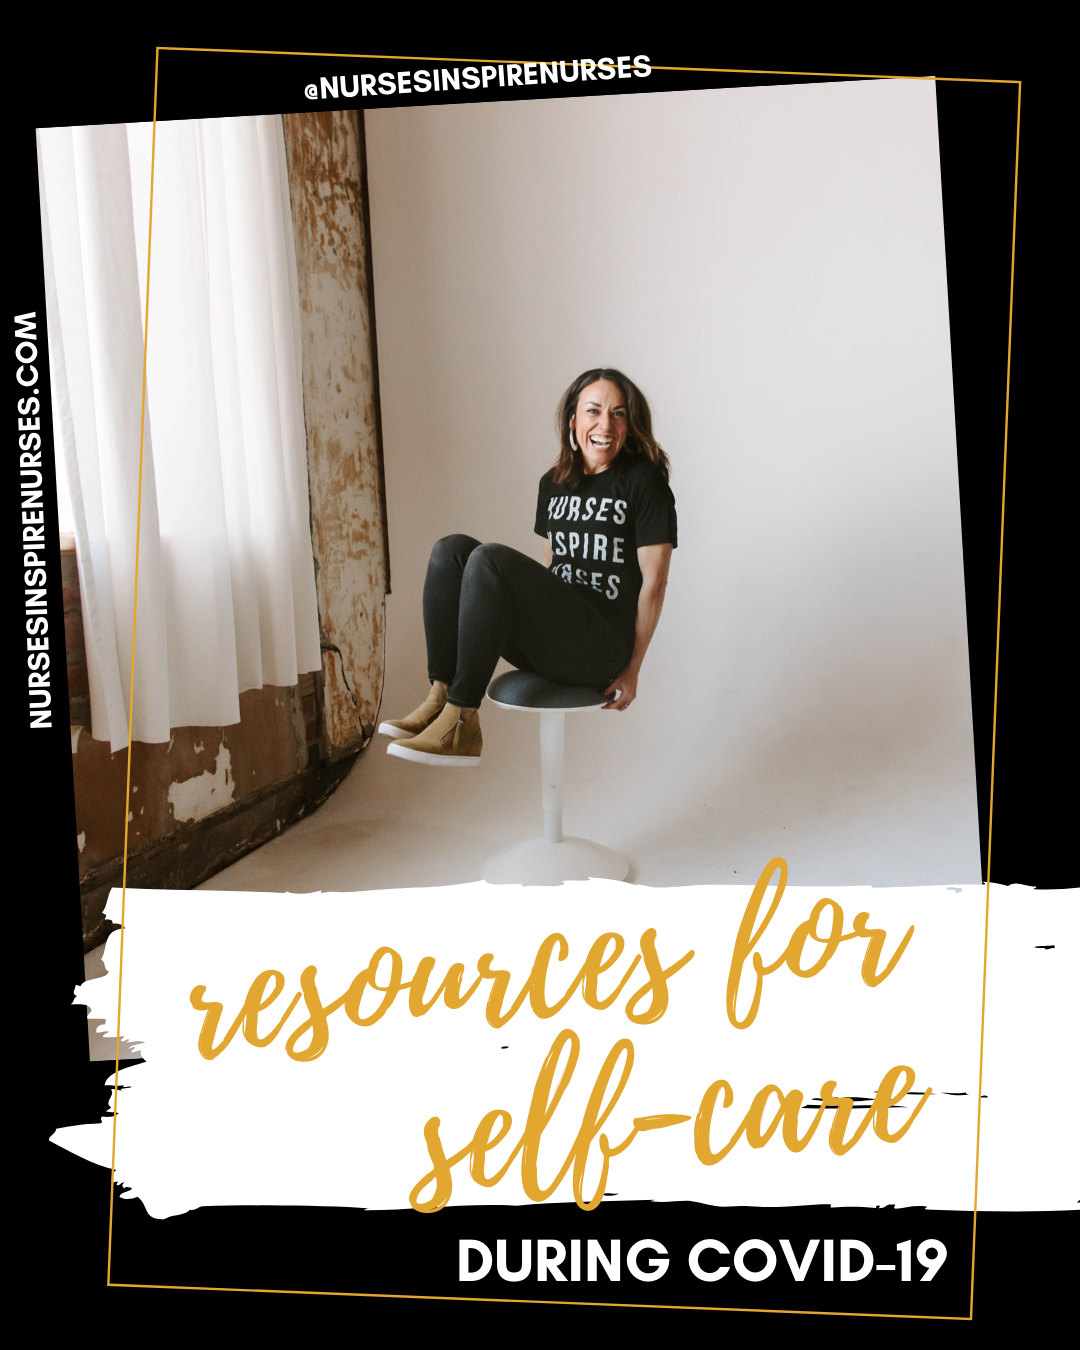 Resources for Self-Care during COVID-19